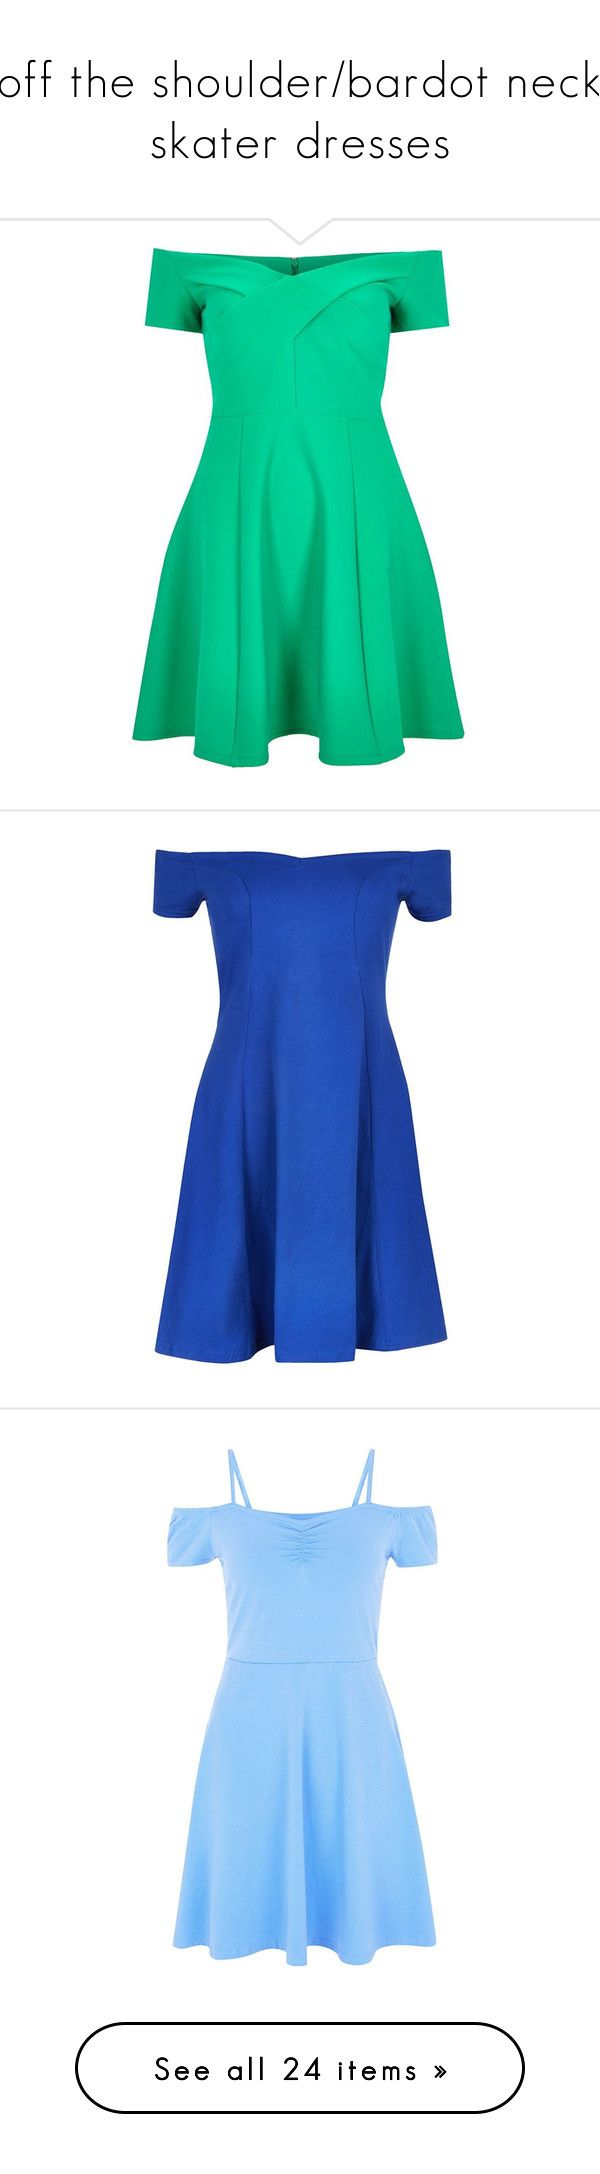 """""""off the shoulder/bardot neck skater dresses"""" by lulucosby ❤ liked on Polyvore featuring dresses, river island, green, sale, green skater dress, circle skirt, green dress, flared skirt dress, flared dresses and blue"""